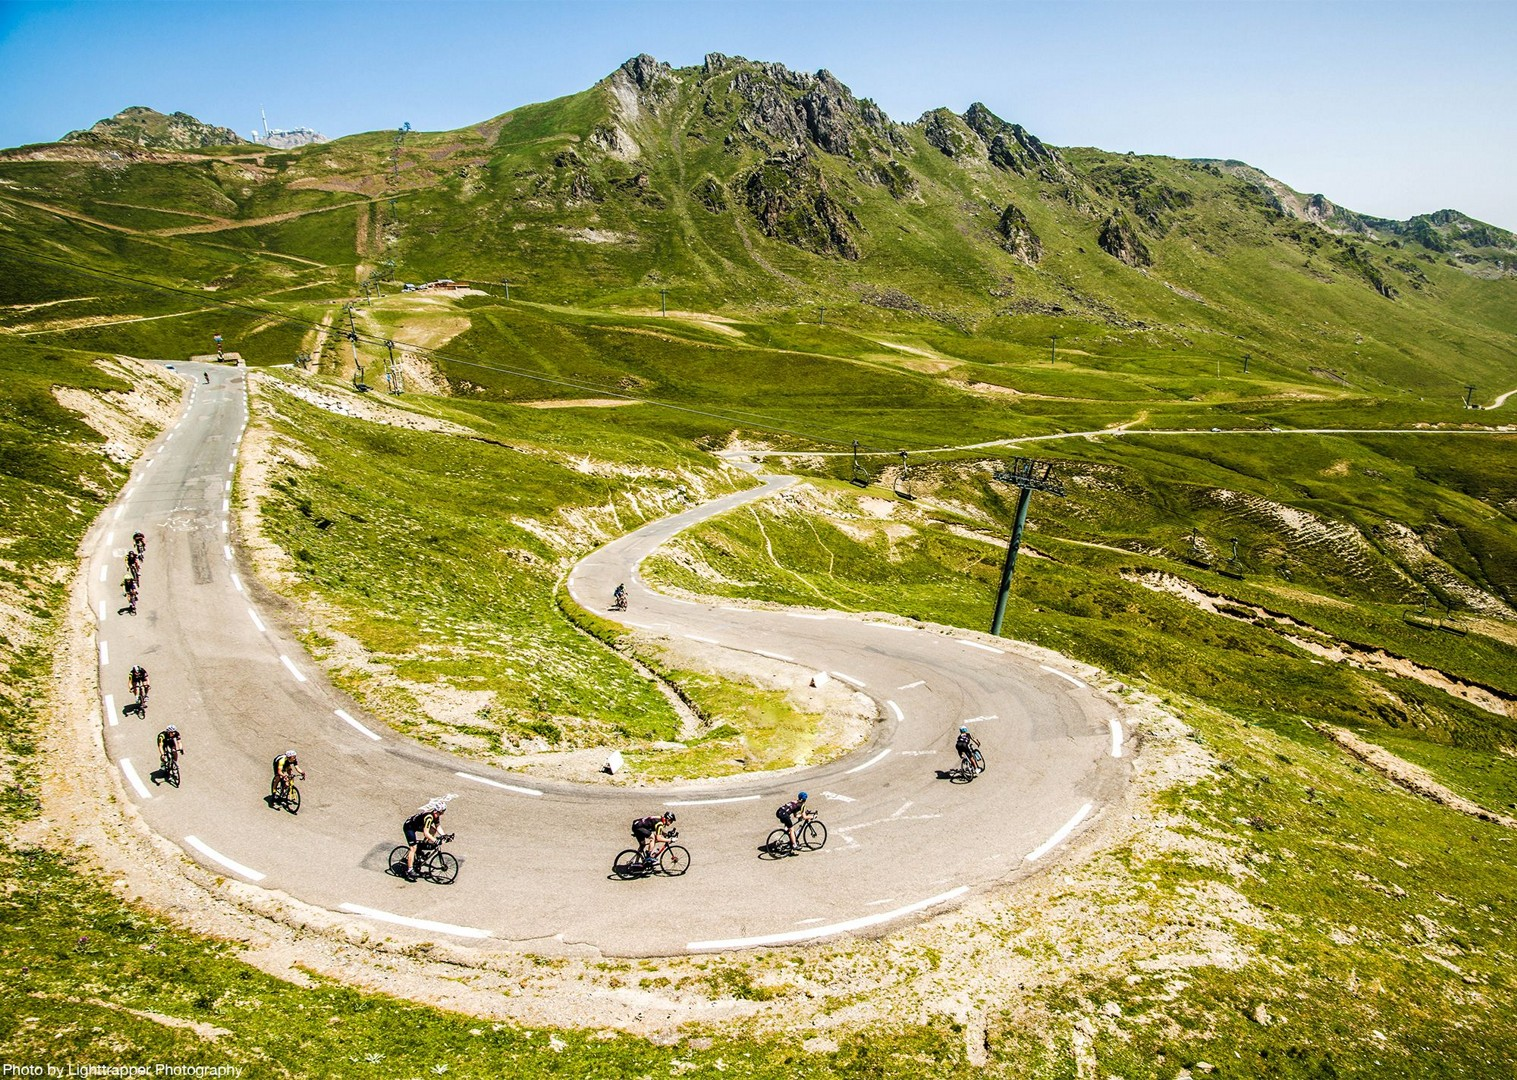 tourmalet-road-cycling-france-saddle-skedaddle.jpg - France - Trans Pyrenees Challenge - Guided Road Cycling Holiday - Road Cycling